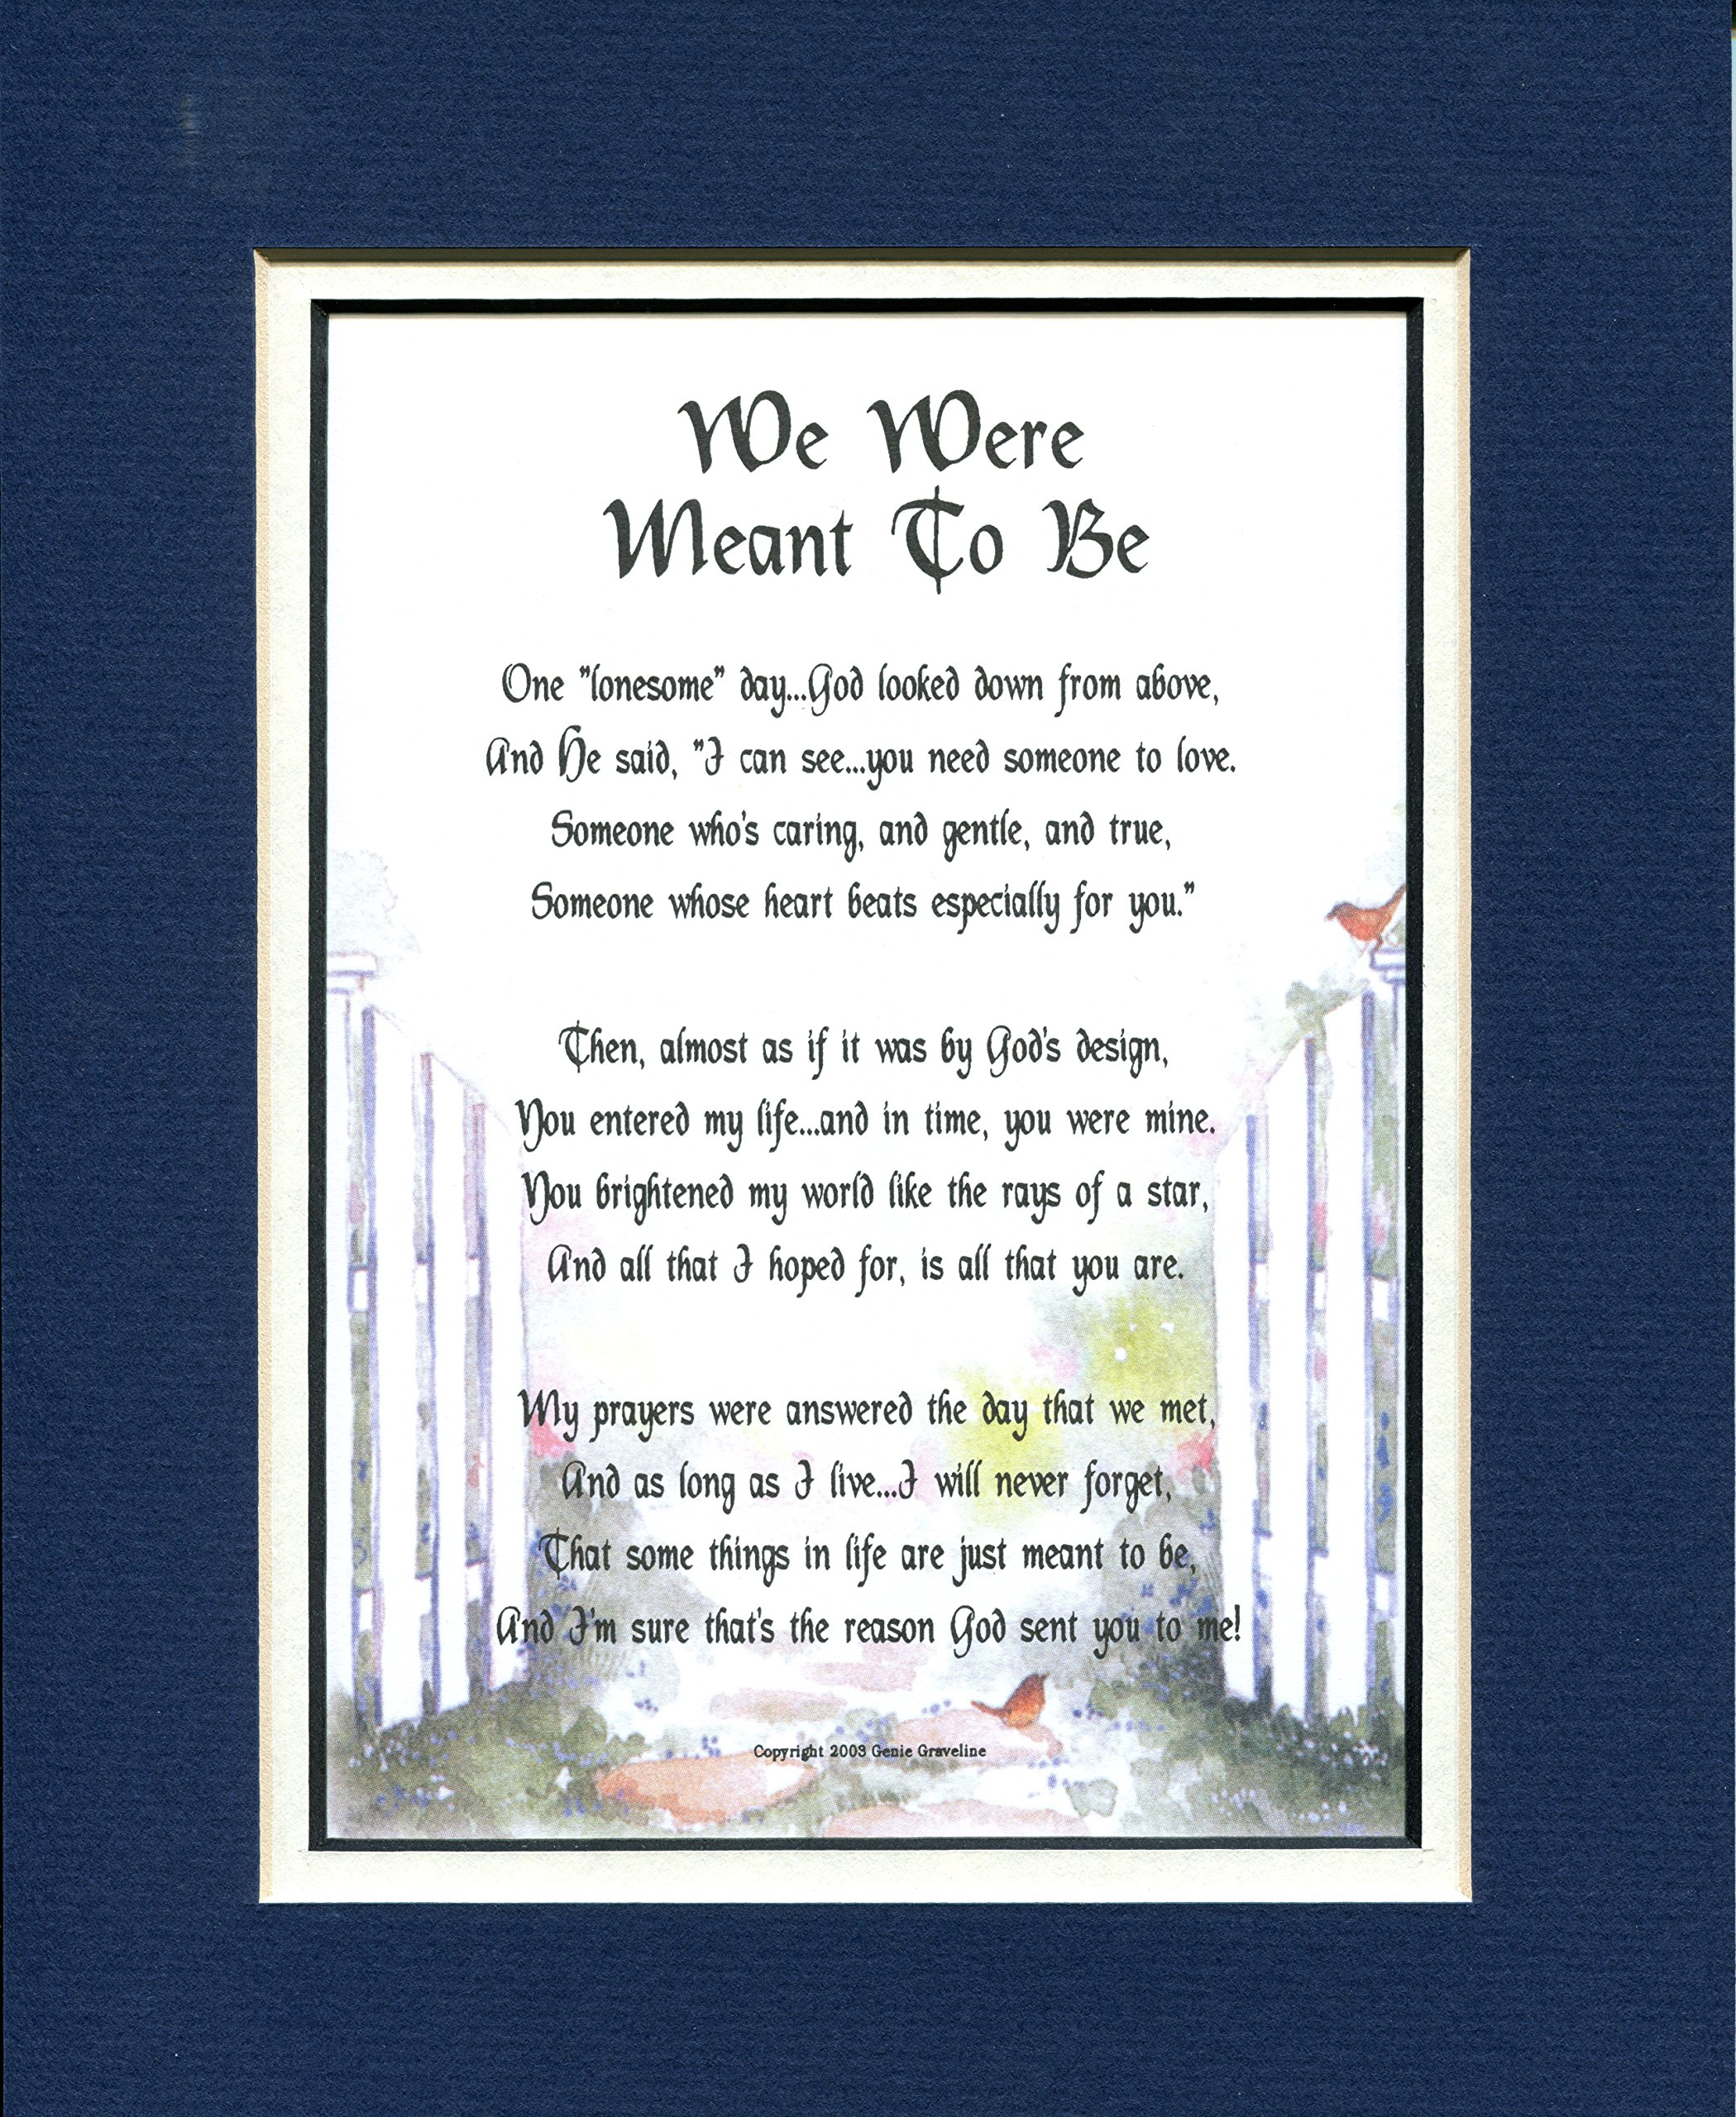 #214 A Valentine Day Gift Present For A Girlfriend, Boyfriend, Wife Or Husband. A Poem About Love, More Color Options